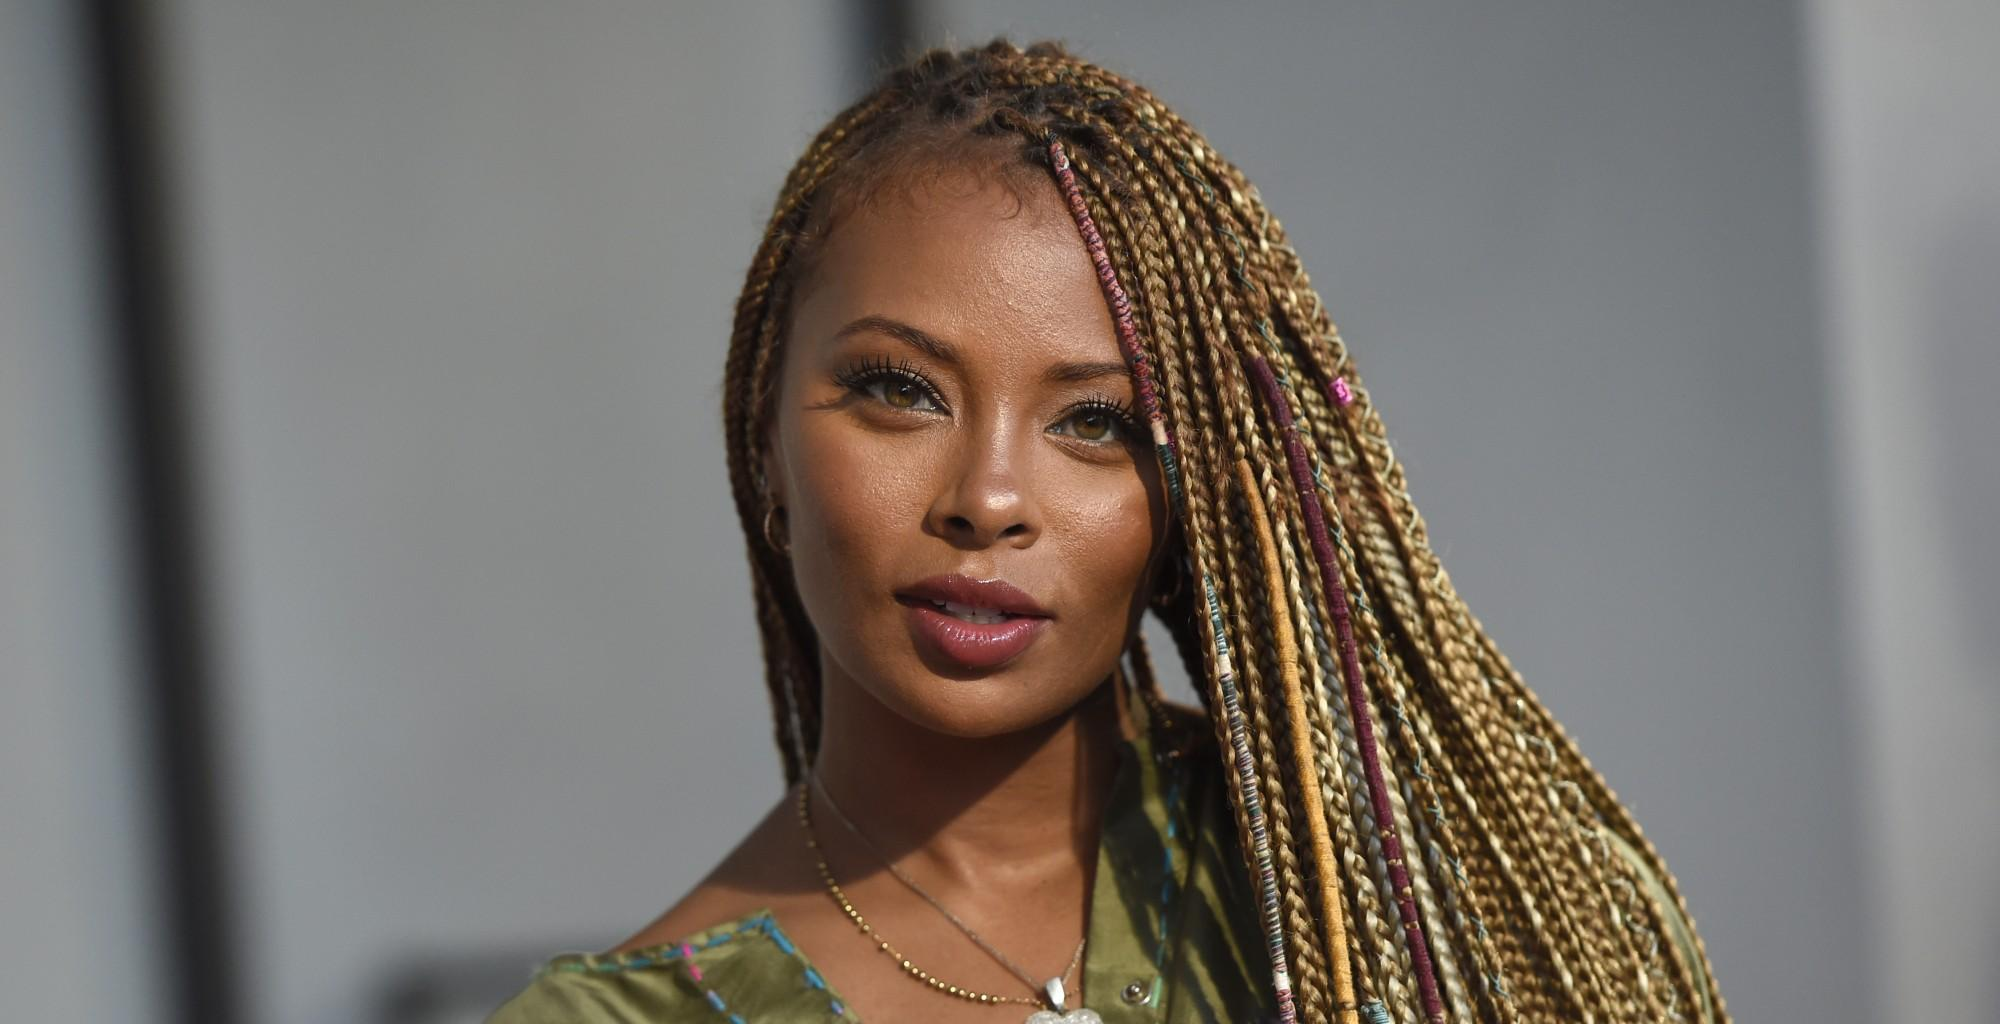 Eva Marcille Celebrates The Birthday Of Her BFF - Check Out The Photos She Shared